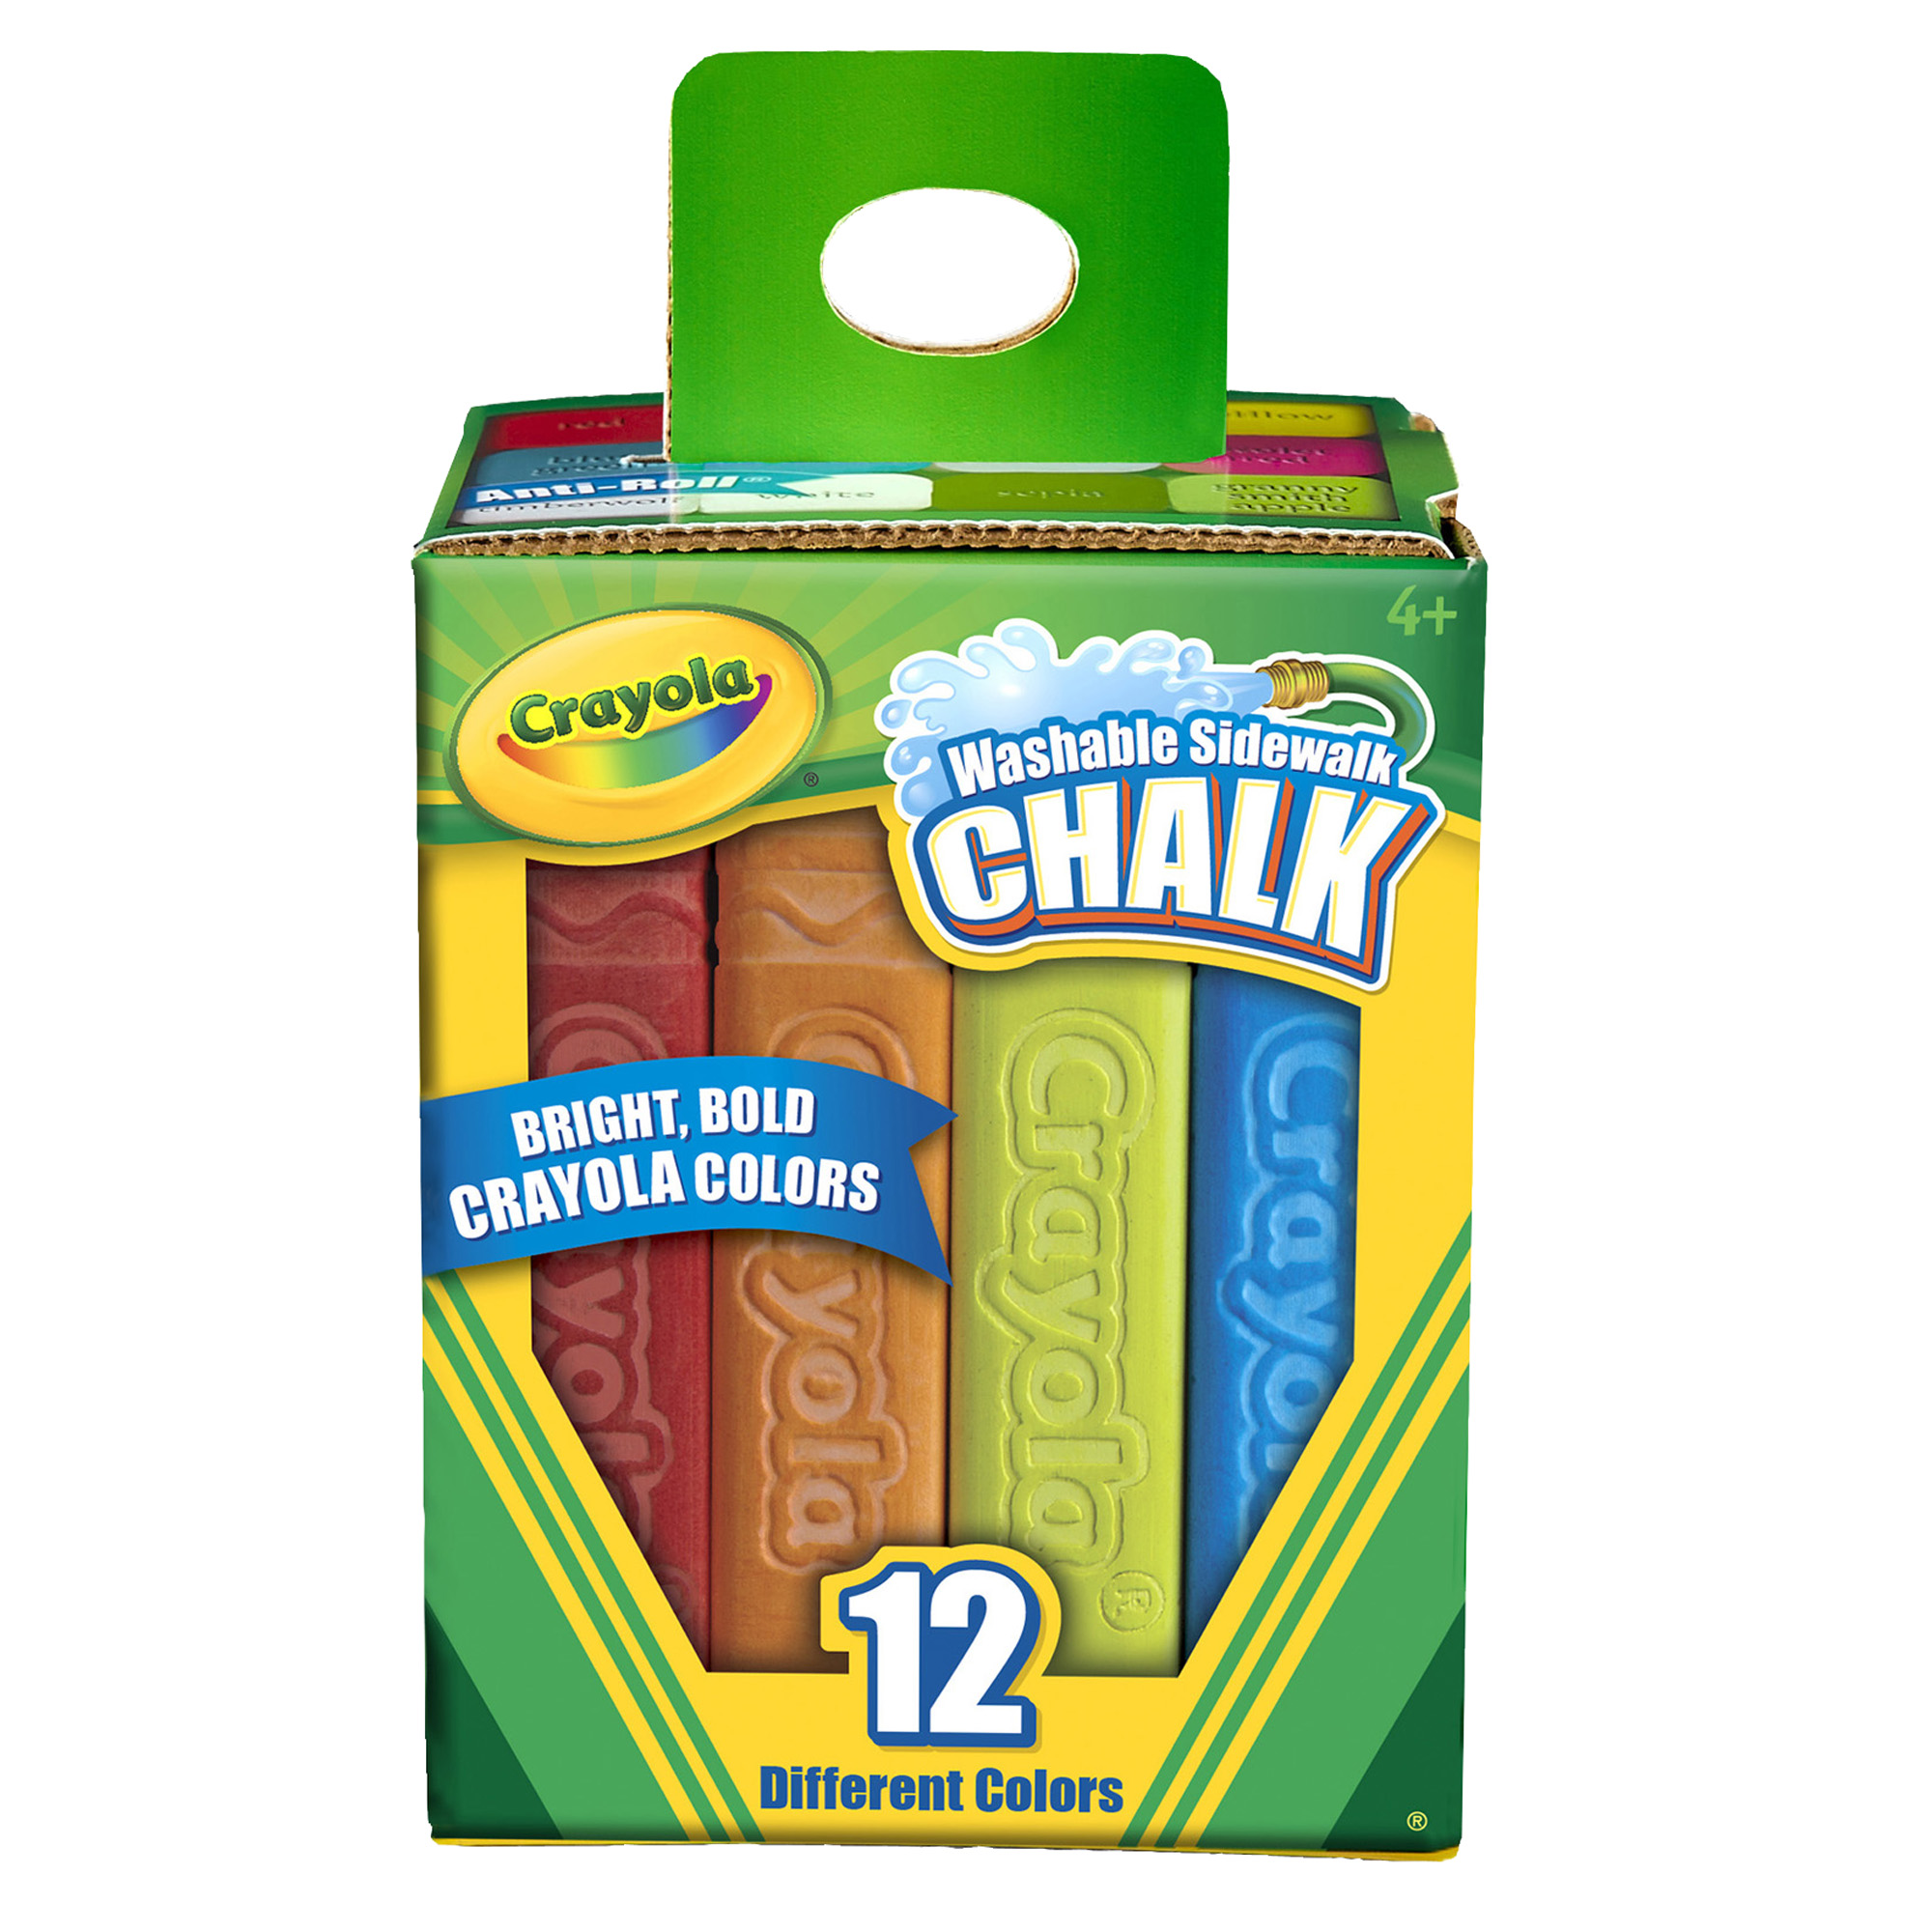 Crayola® Washable Sidewalk Chalk, 12 ct per box, Set of 8 boxes